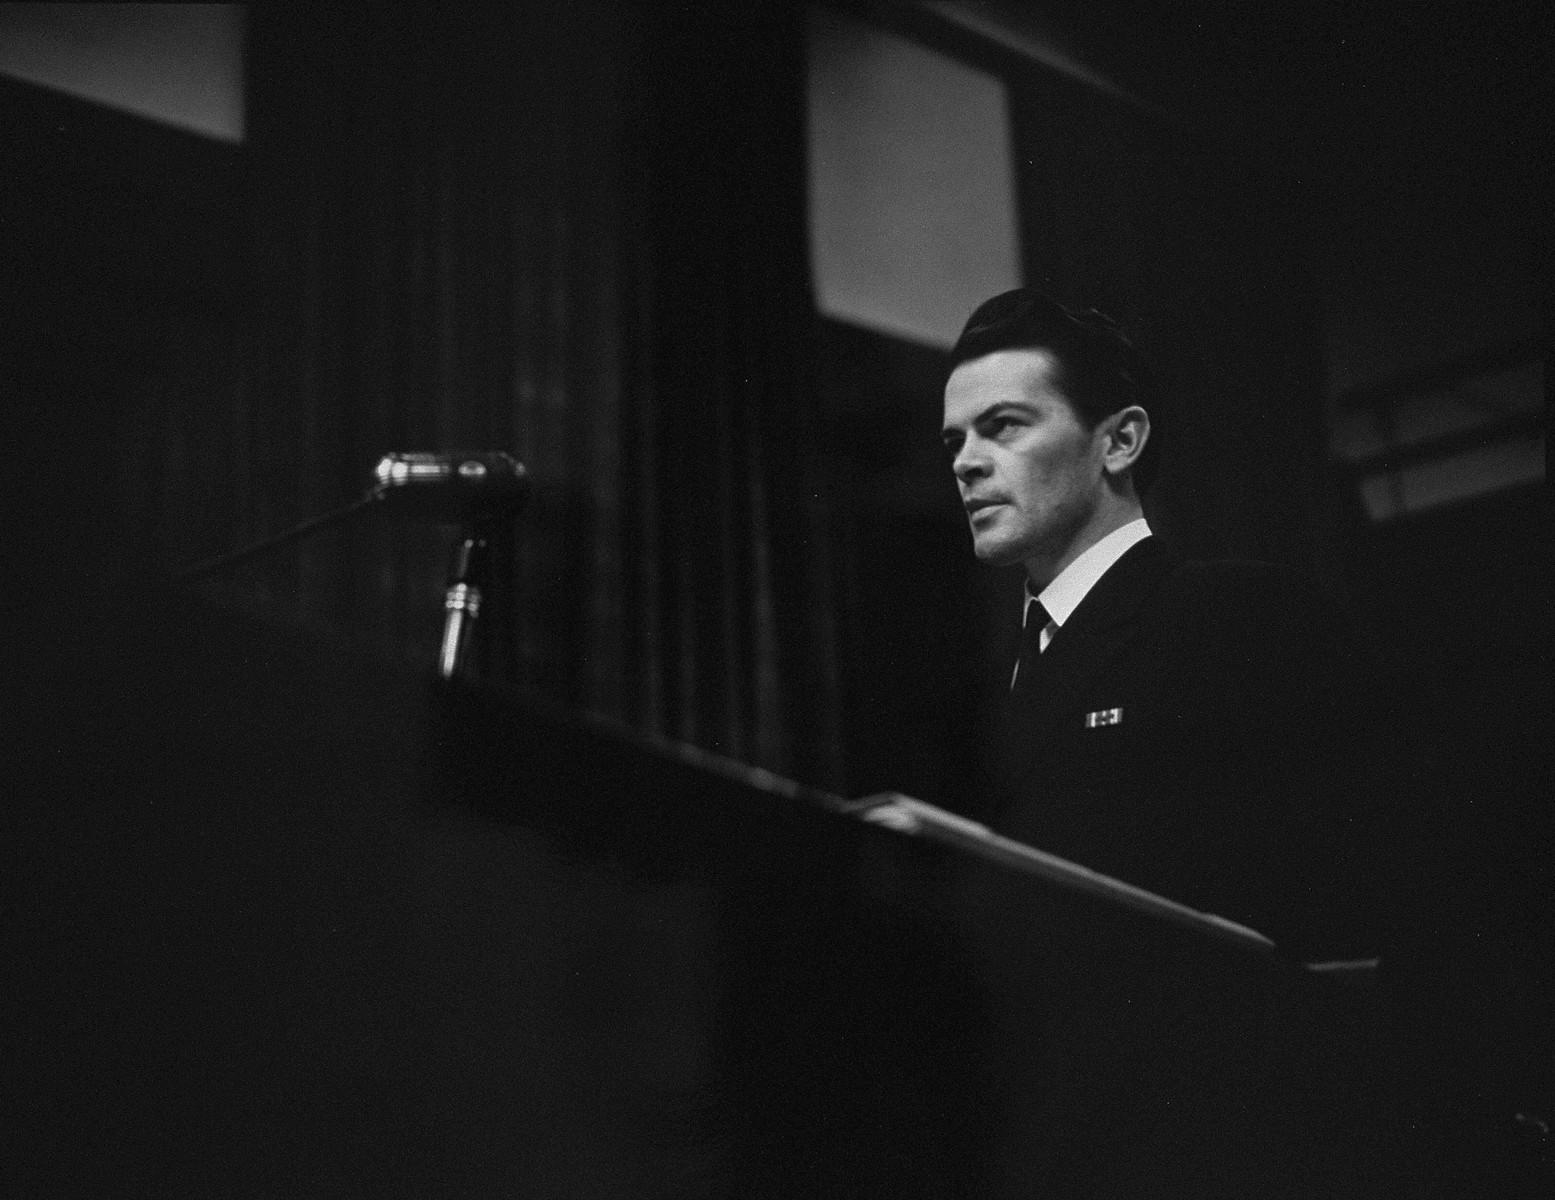 U.S. Assistant trial counsel Lt. Thomas F. Lambert, Jr. presents the prosecution's case against Martin Bormann at the International Military Tribunal for war criminals at Nuremberg.